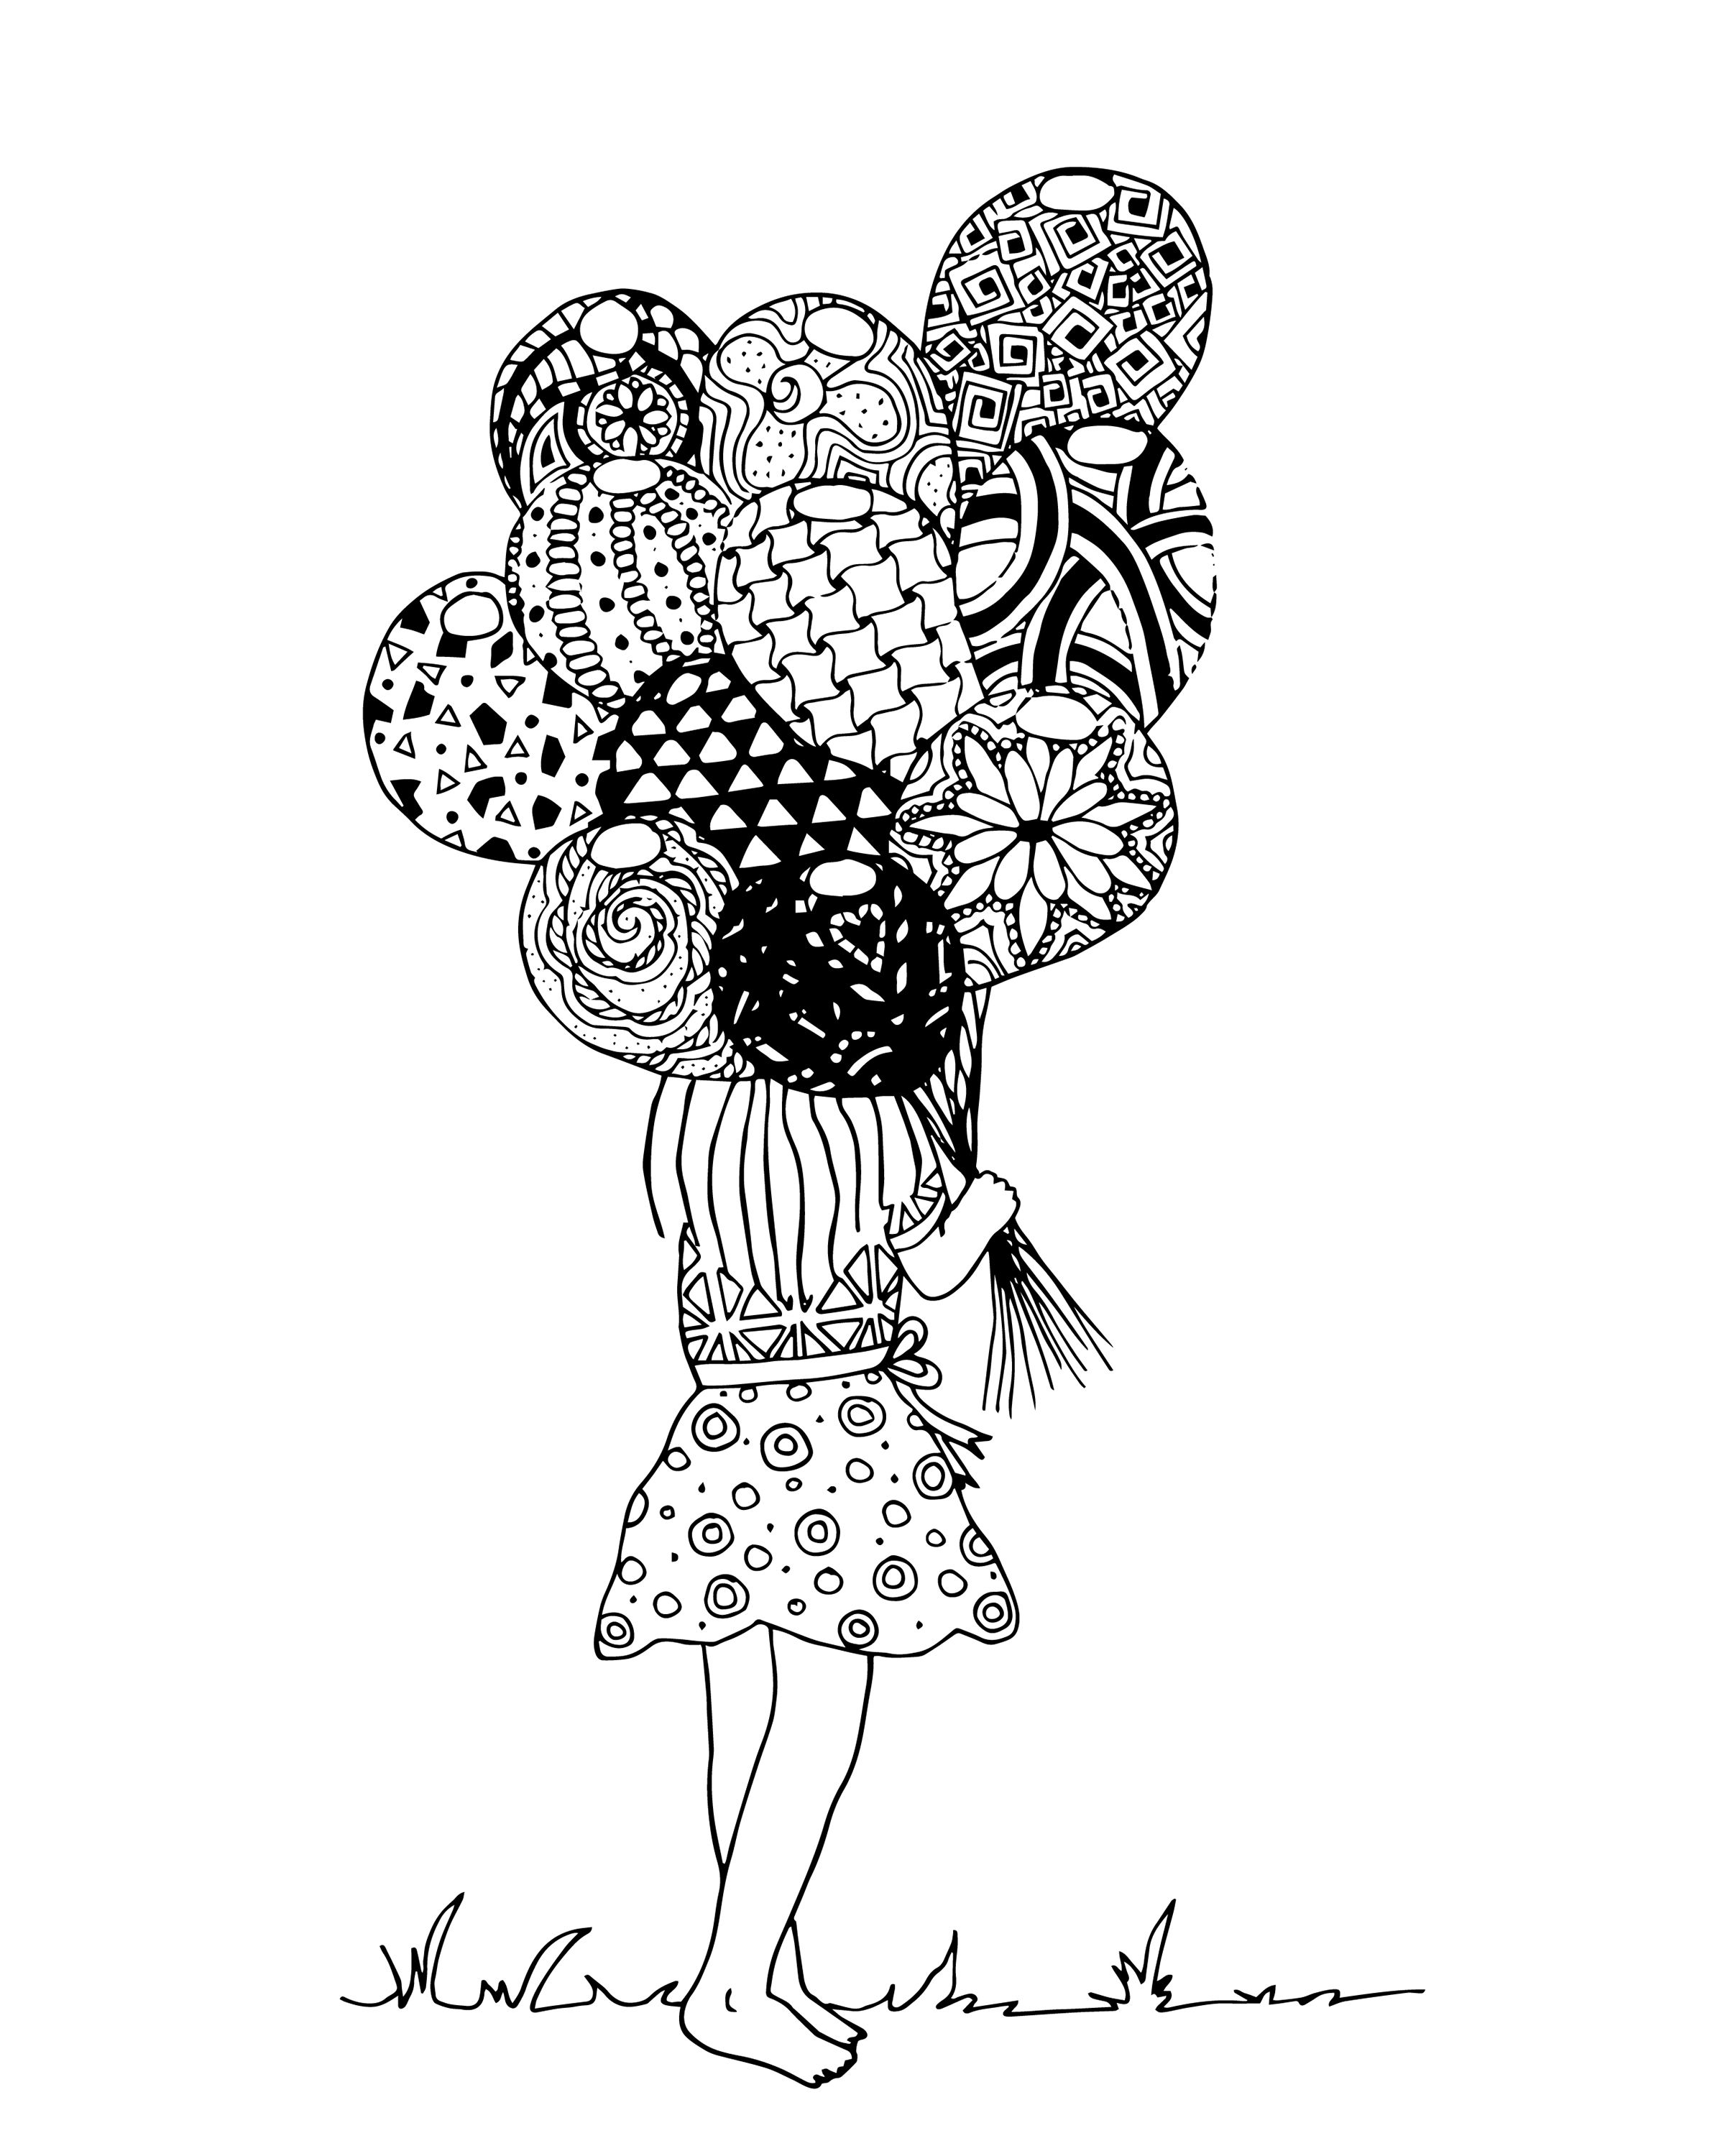 FREE downloadable coloring page // Niña con globos para colorear ...